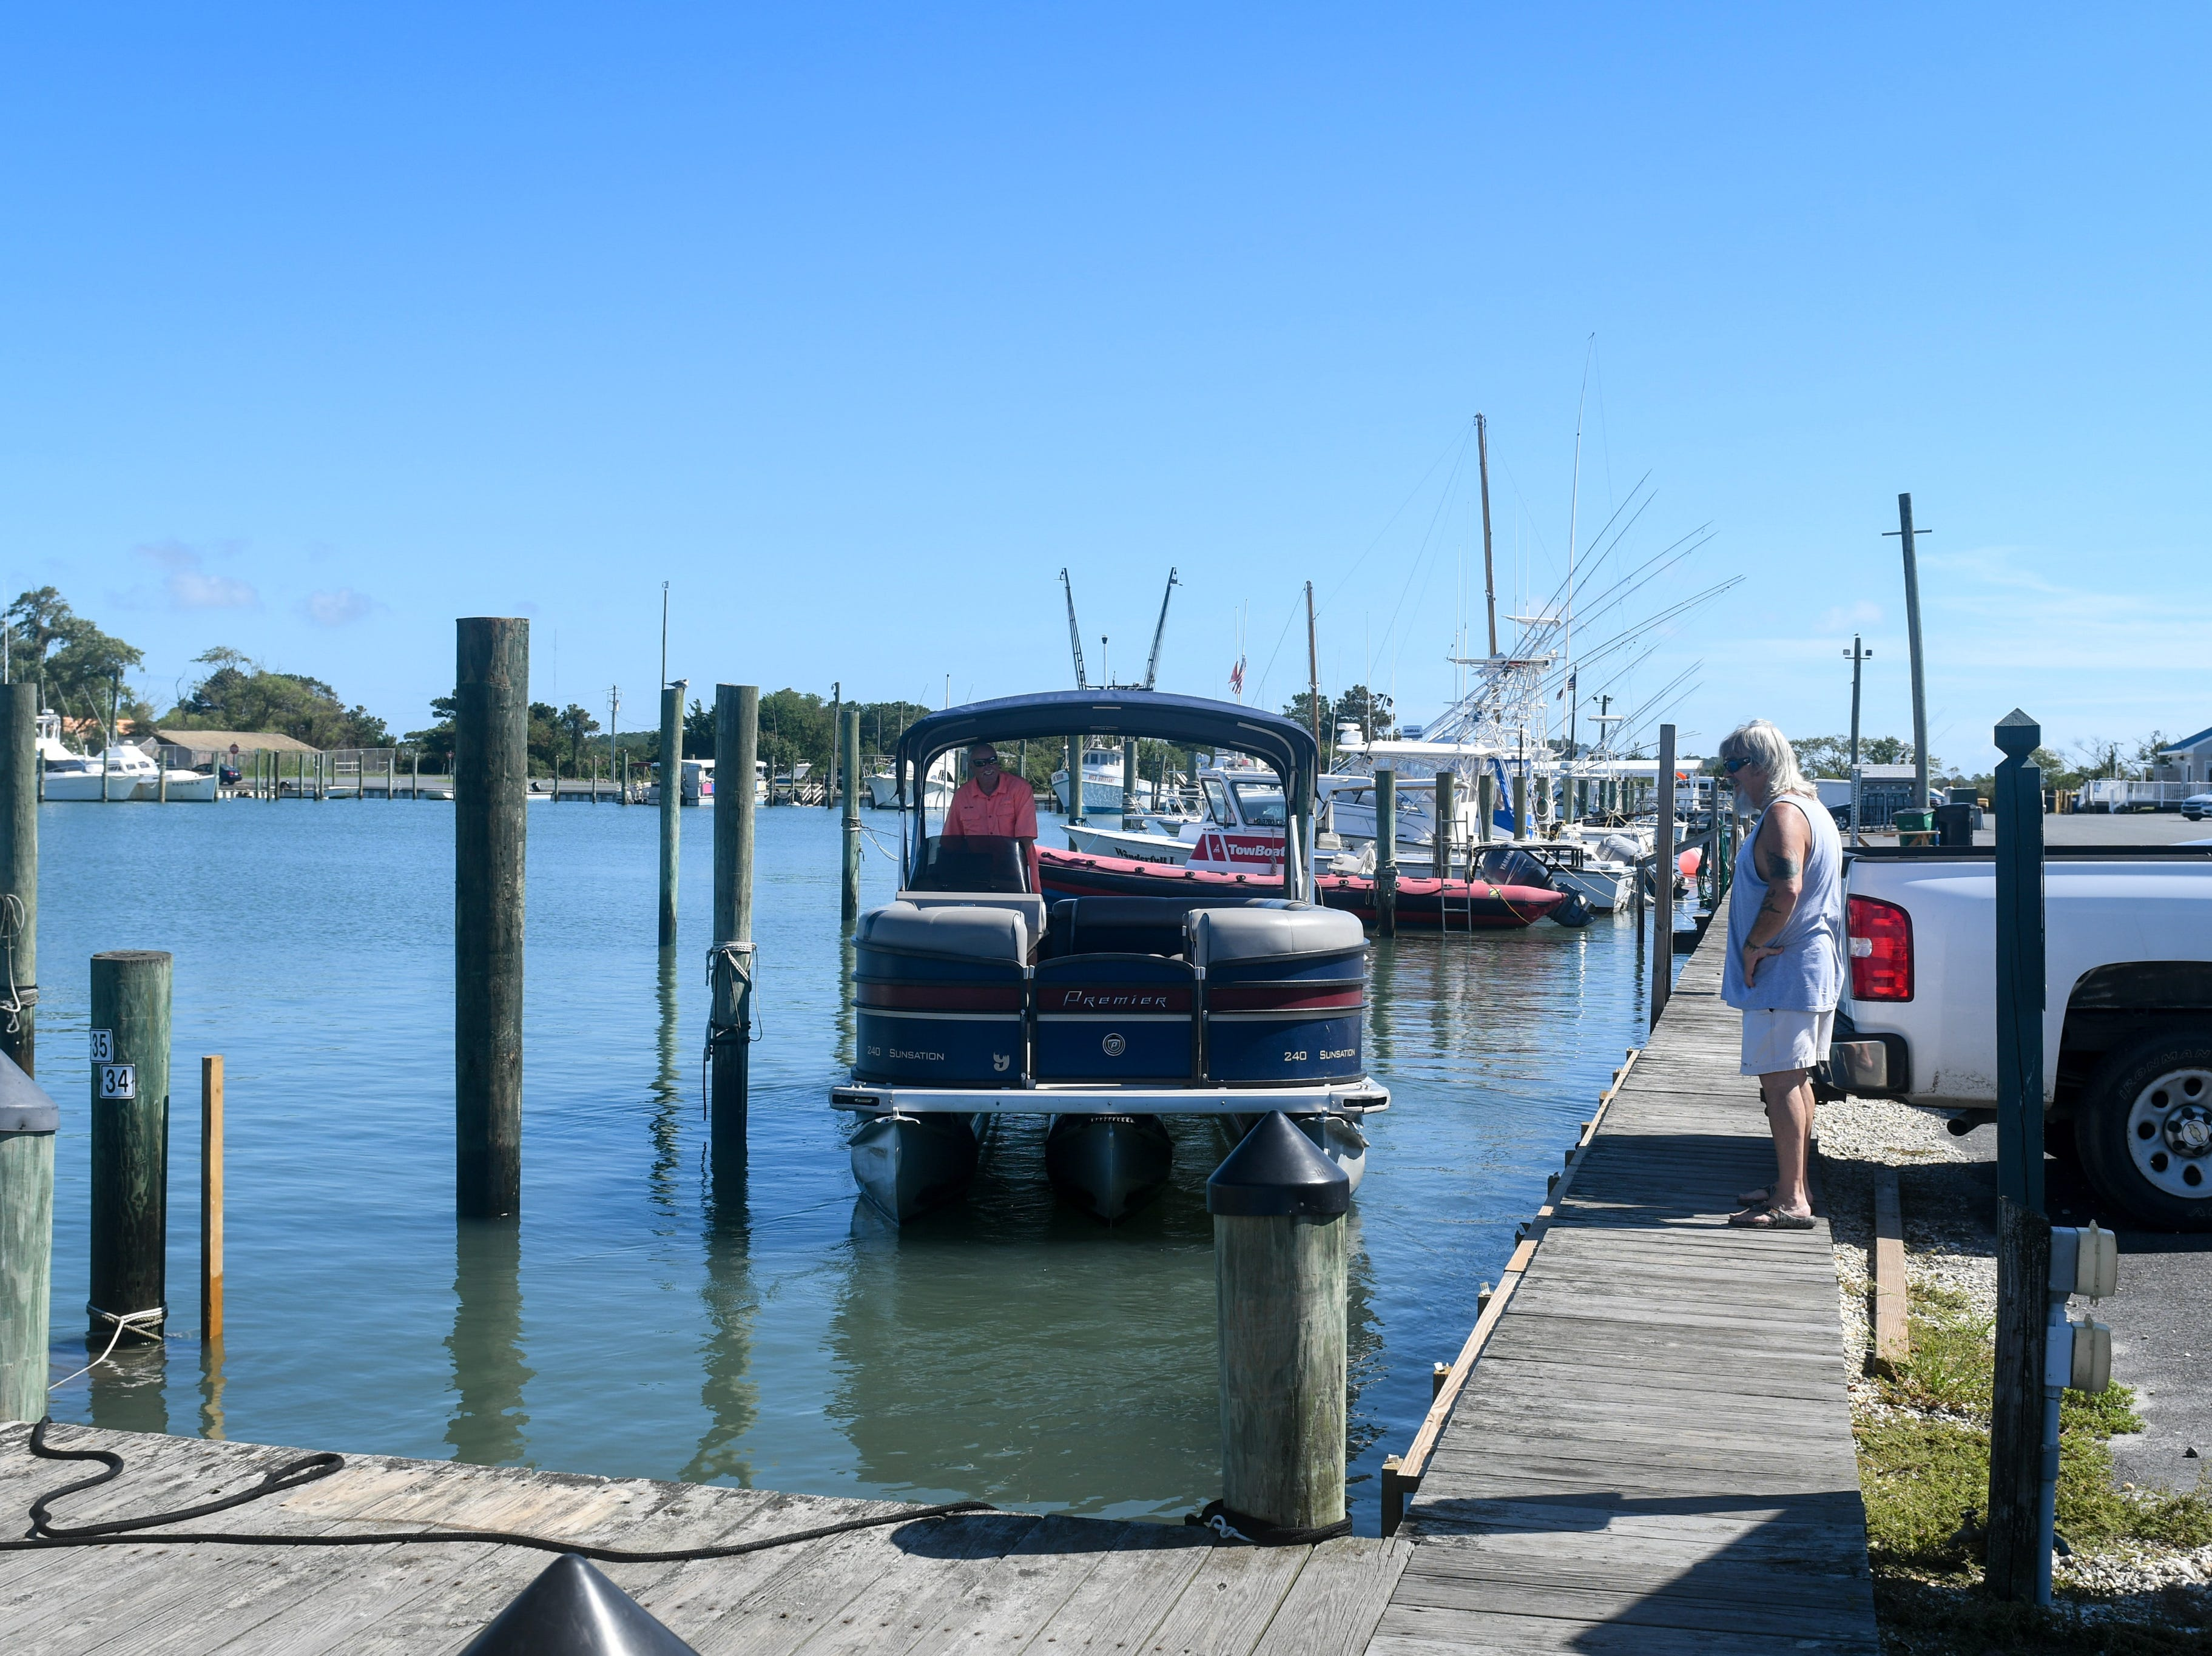 Tours were still leaving out of the Chincoteague Island harbor on Tuesday, Sept. 11. The island is part of the state's zone A evacuation that was issued in advance of Hurricane Florence, but local officials have not yet asked residents to leave.